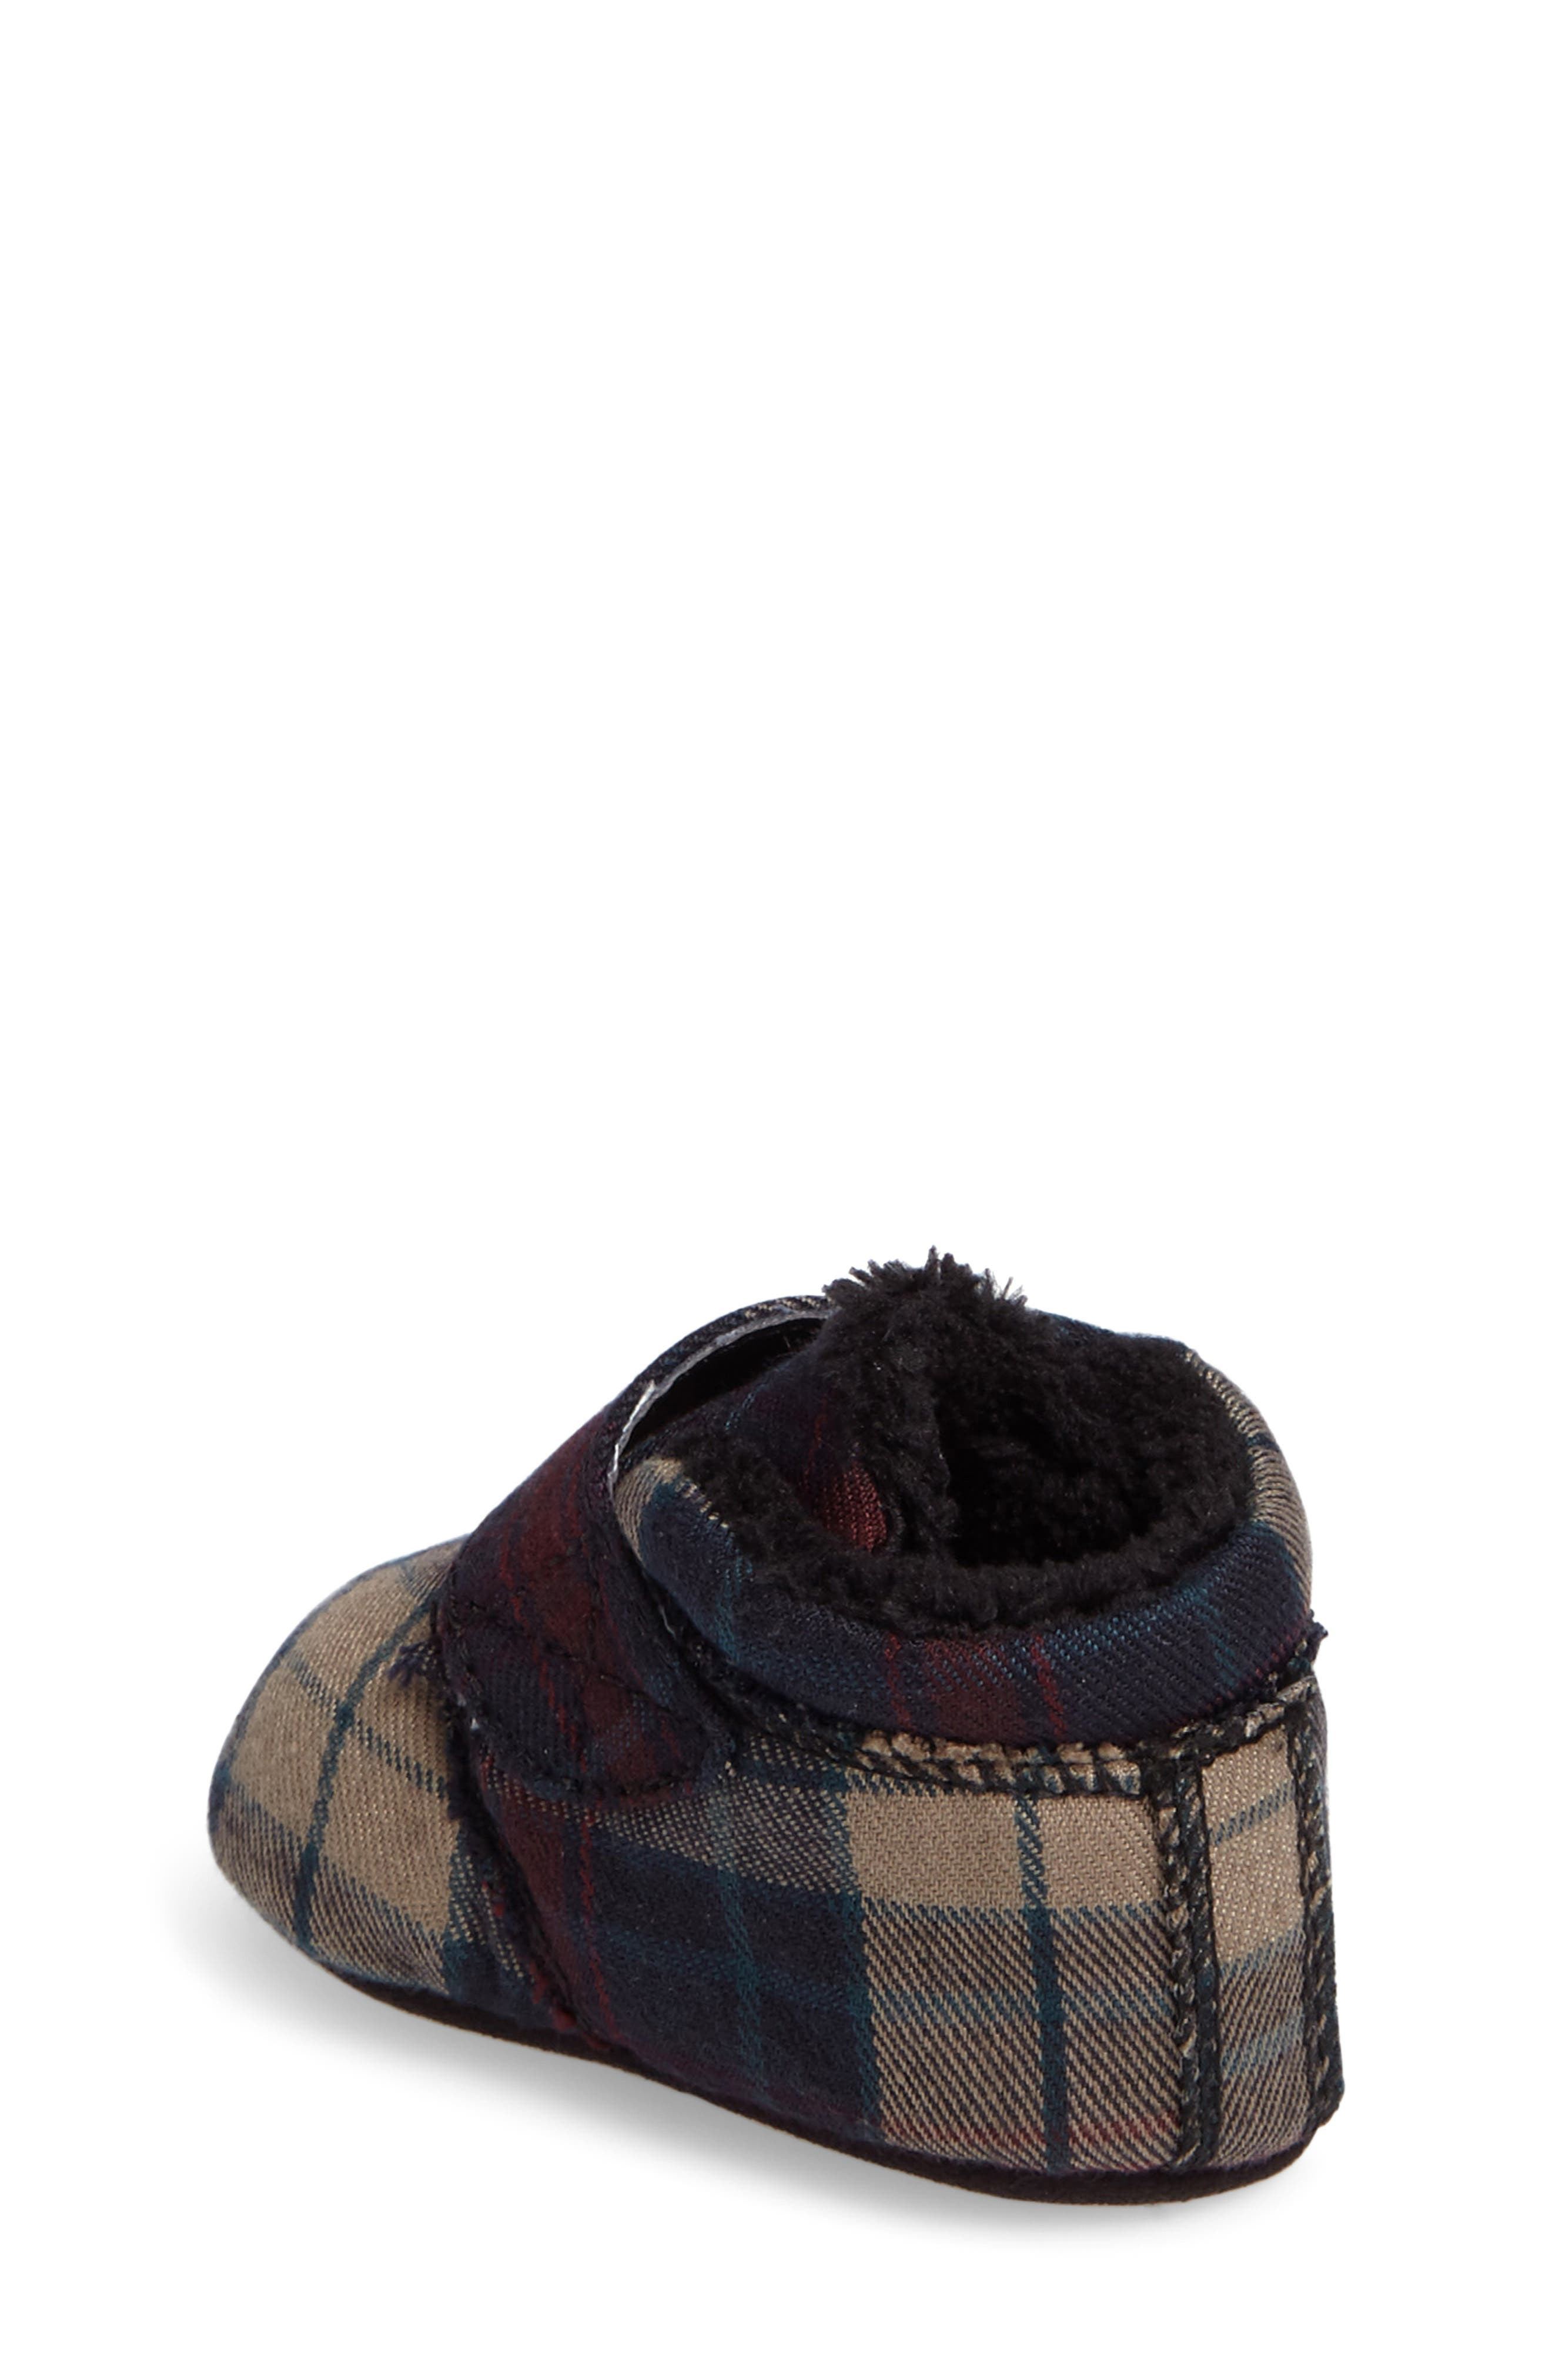 Alternate Image 2  - UGG® Bixbee Plaid Crib Bootie (Baby)